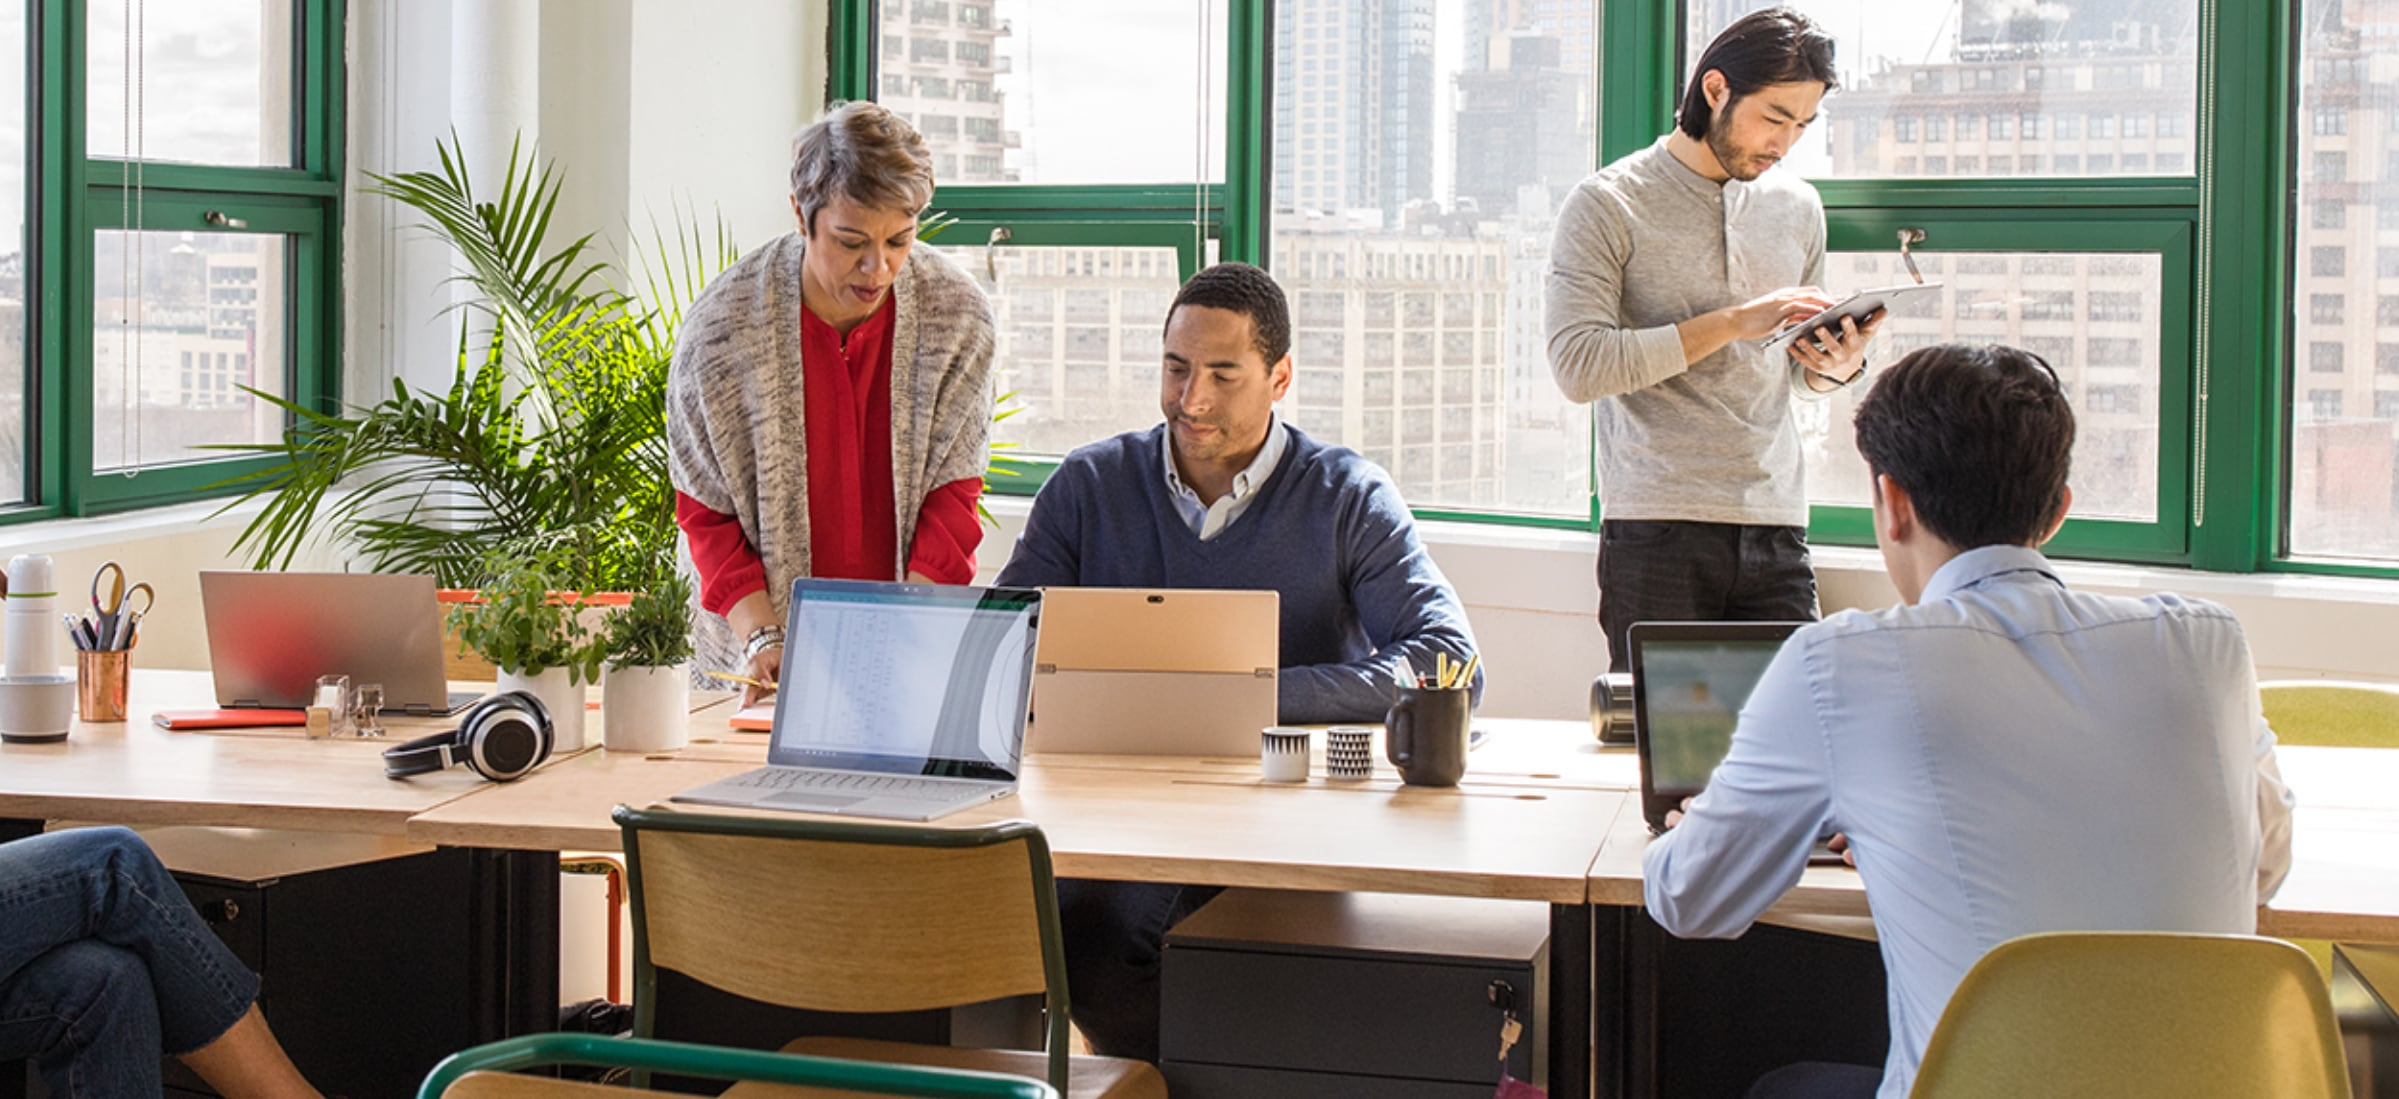 People working in an open office environment.